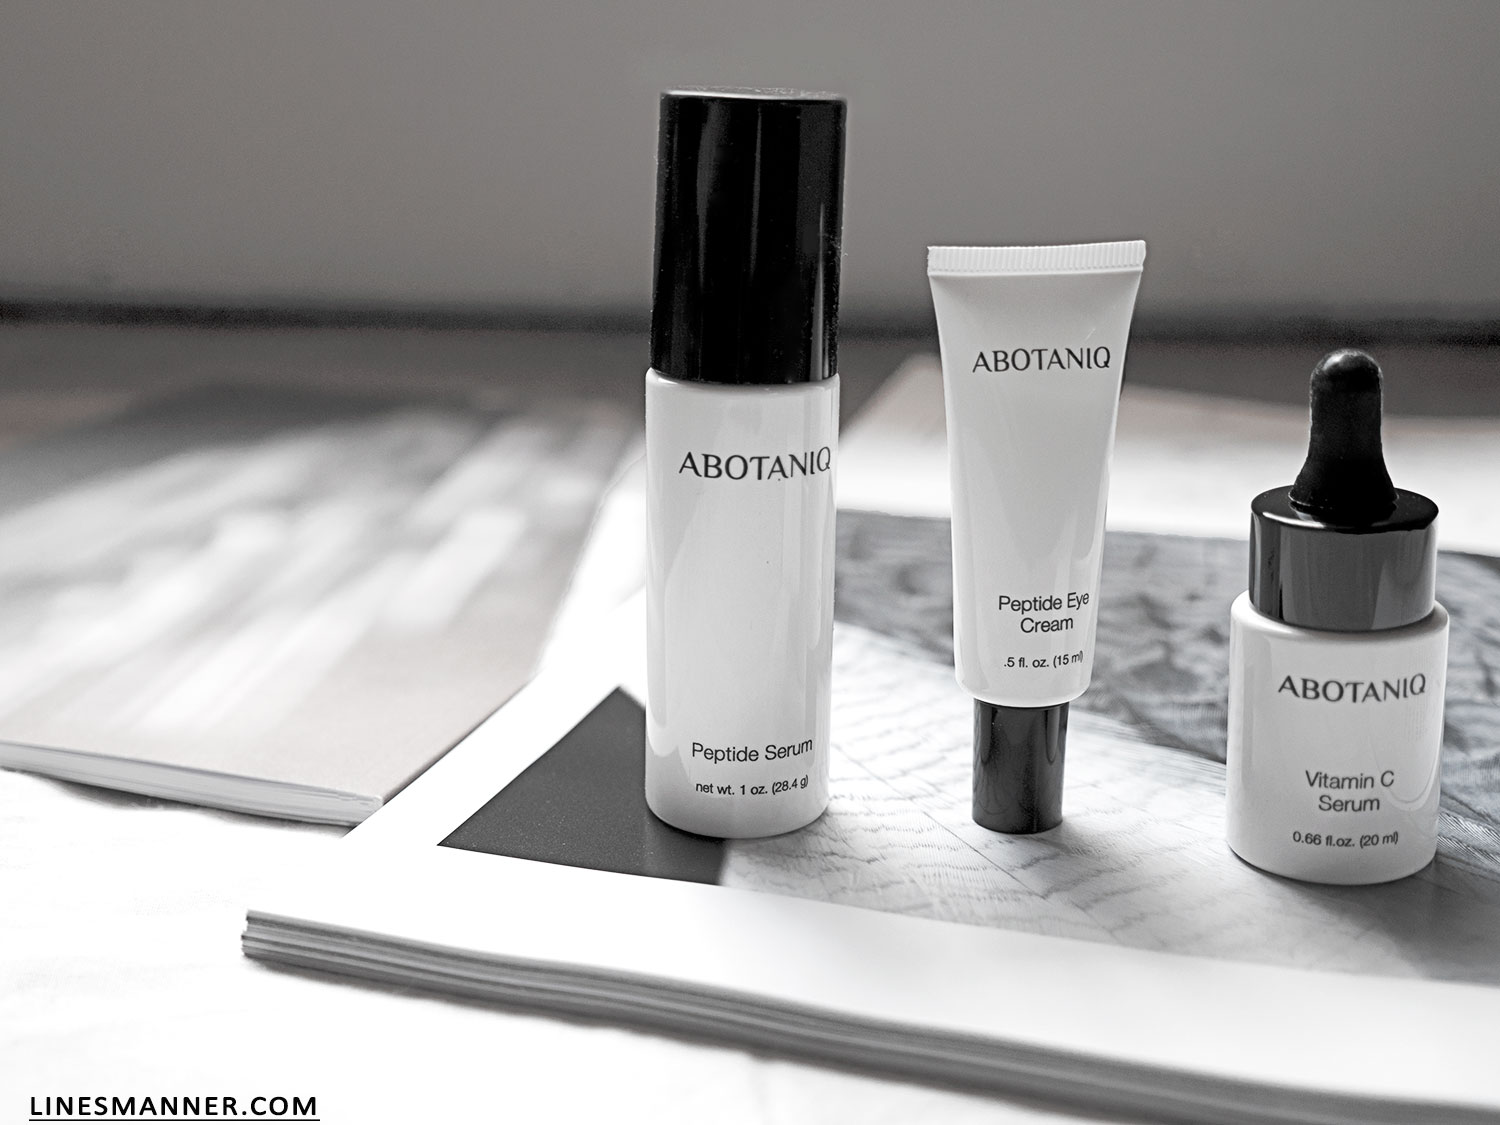 Lines-Manner-Abotaniq-Skin_Care-Natural-Science-Technology-Beauty-Quality-Authentic-Skins-Peptides-Antioxidant-Fresh-Black_and_White-Essentials-Expert-4